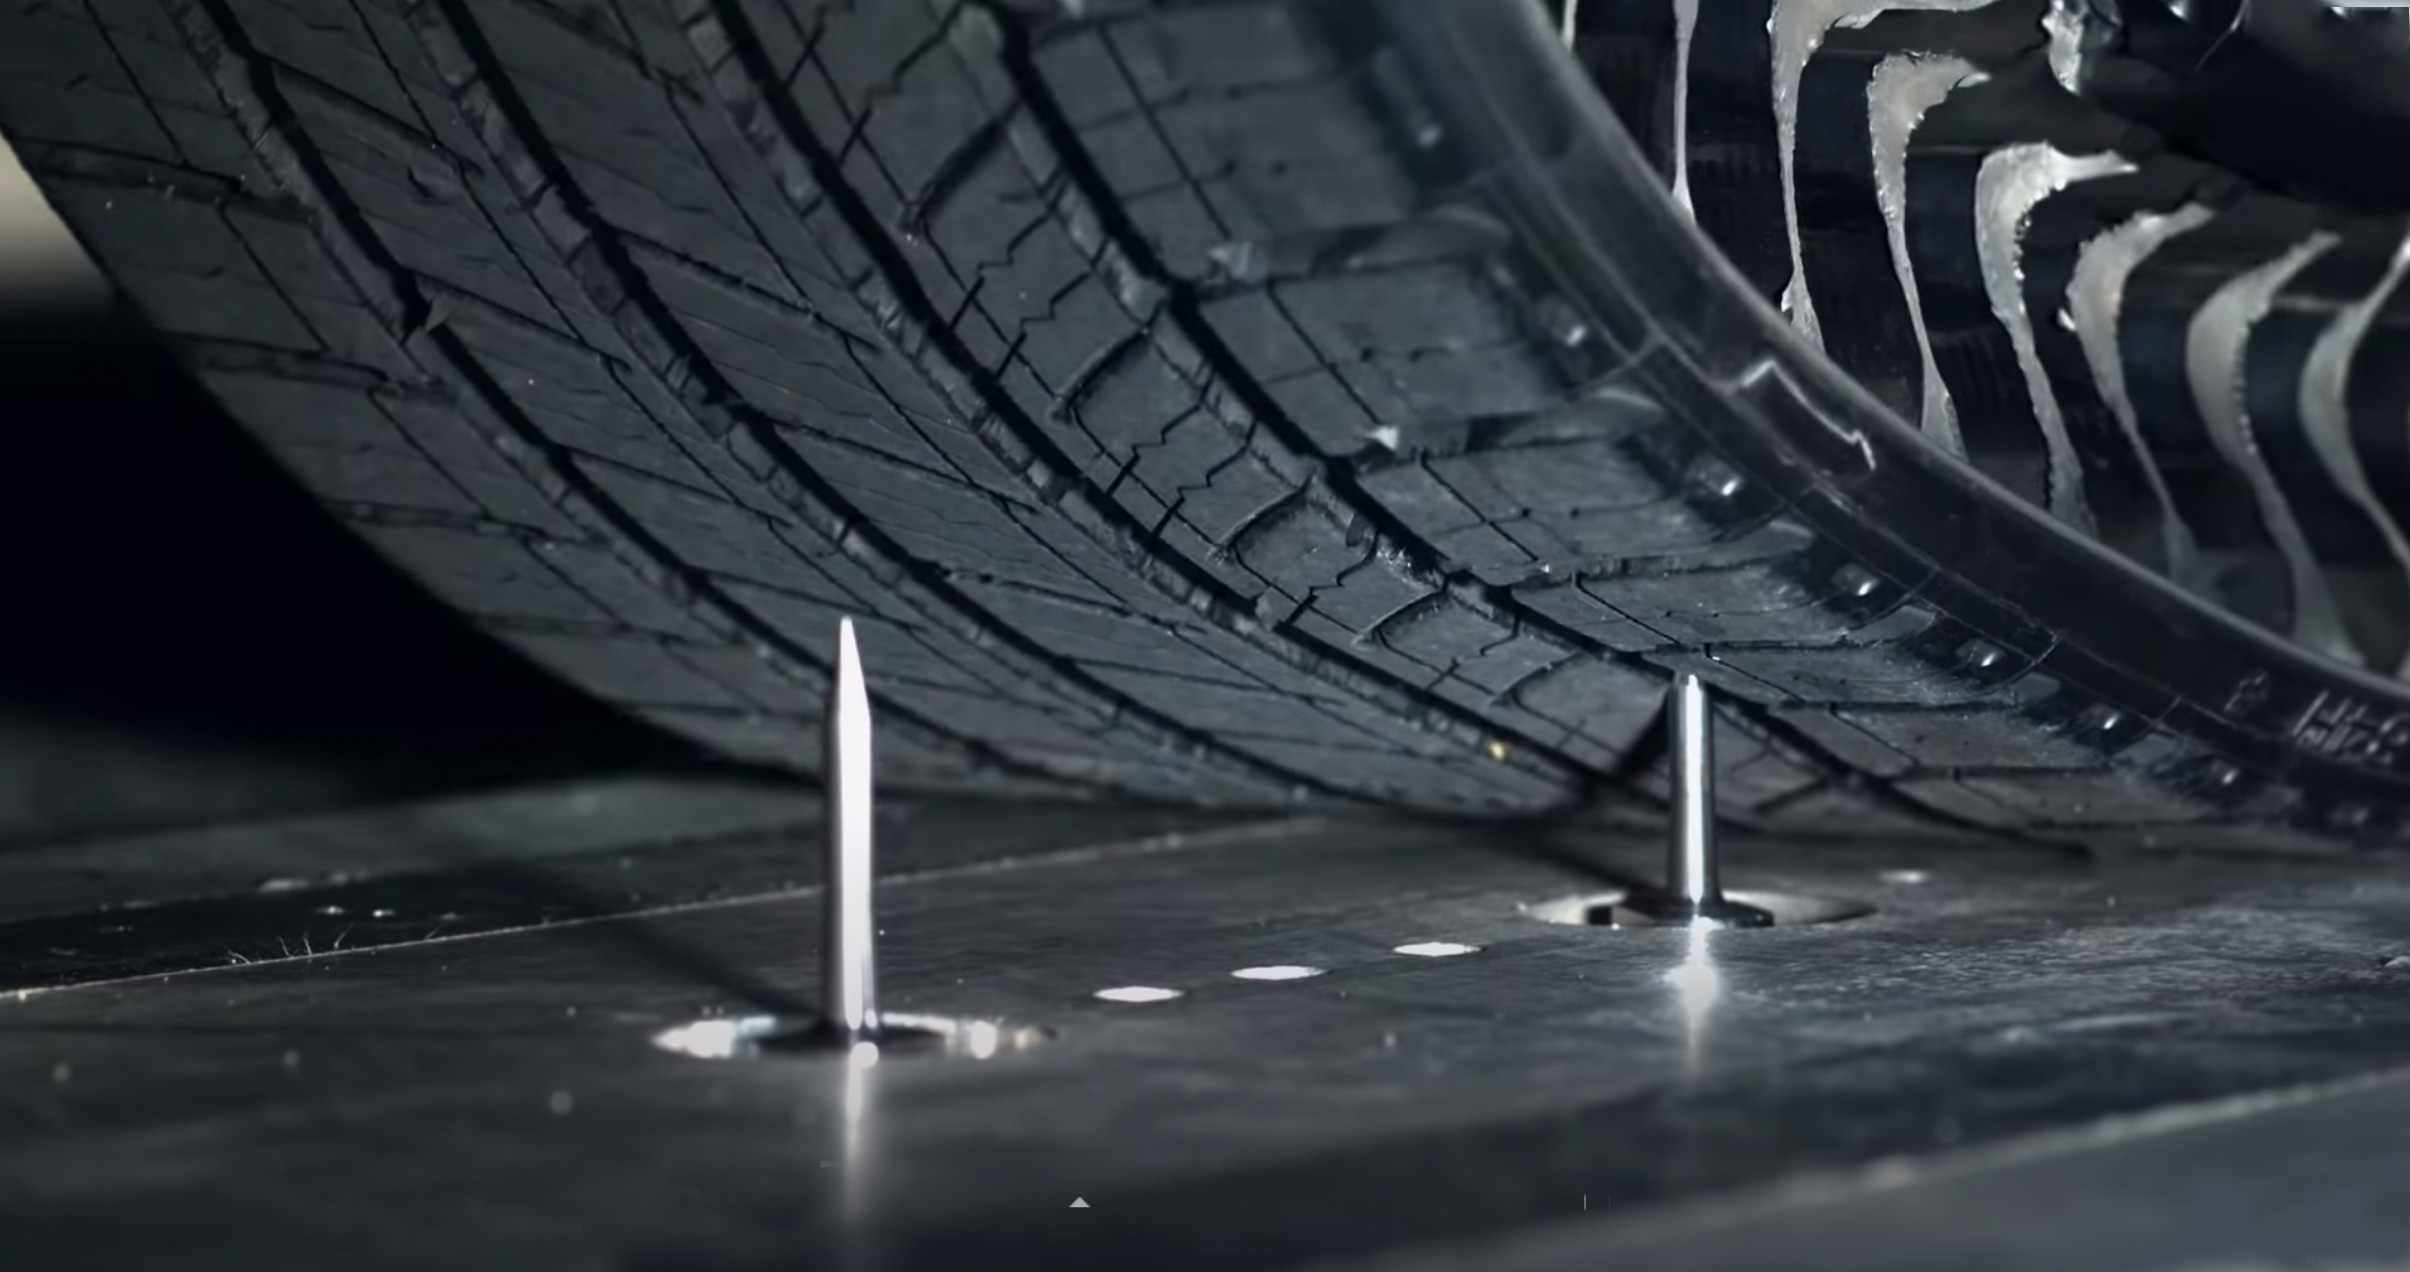 Uptis tire and nails